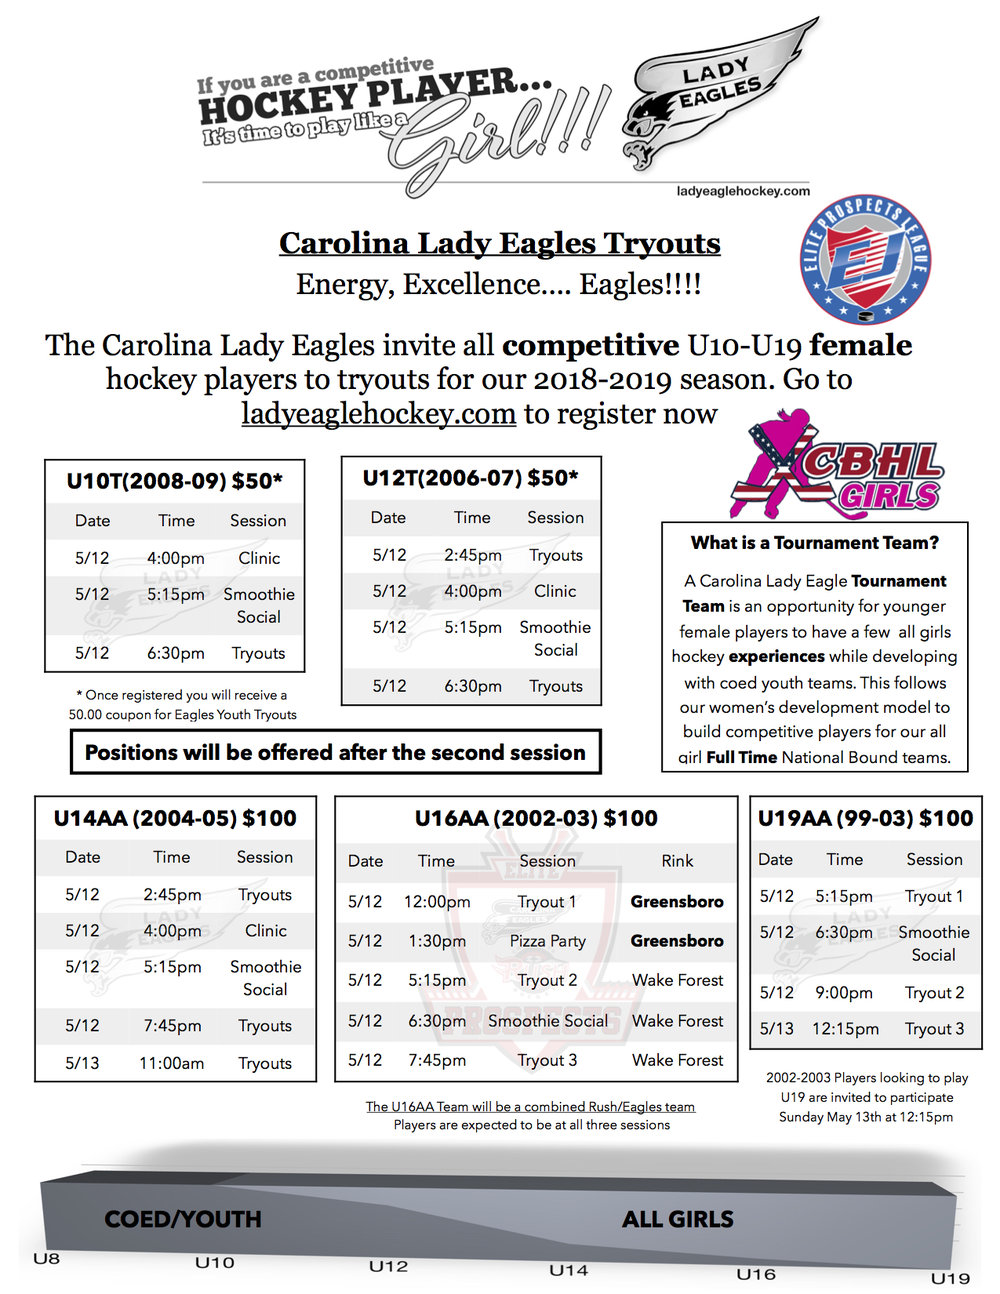 We have the most fun tryouts of anyone in the area .... so are you Ready to signup?.....  Click here to register  now.  Becoming a Lady Eagle is the best gift to give your mom on Mothers Day!!